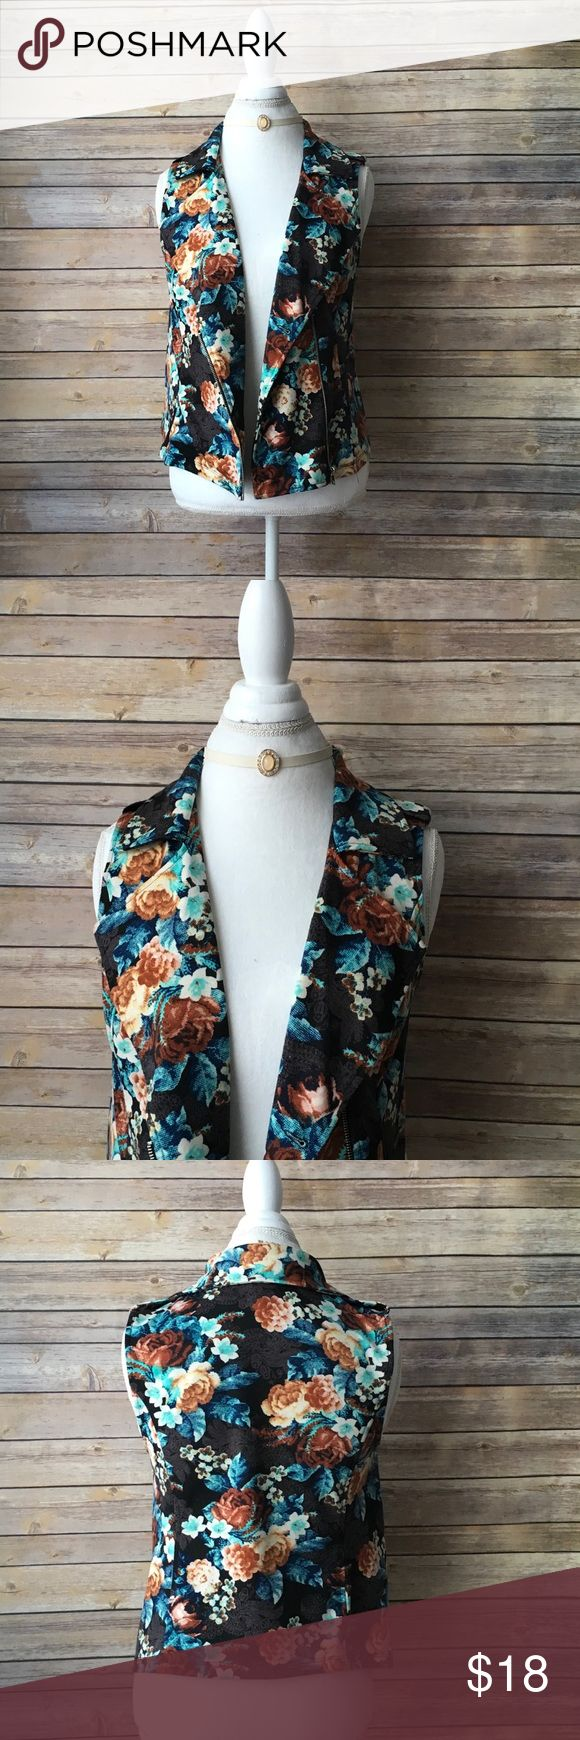 Xhilaration Floral Vest Size Medium Xhilaration Floral Vest Size Medium NWOT Xhilaration Jackets & Coats Vests